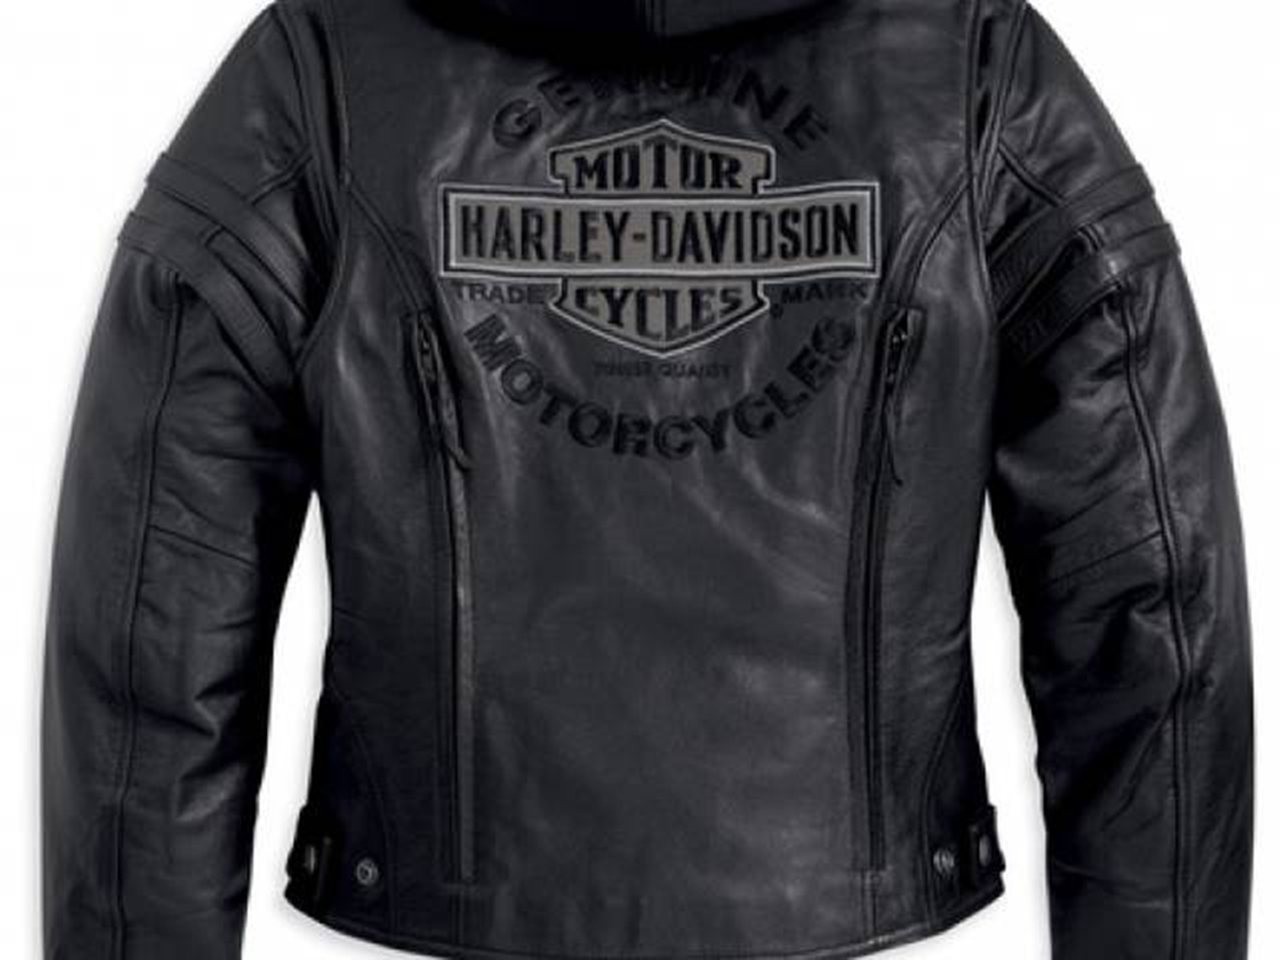 Harley-Davidson® leather jackets, boots & rain suits for the biker who likes to ride all year long. We are located in Oconomowoc Wisconsin – right in the heart of Harley® Milwaukee land. Feel comfortable with Genuine H-D® jackets, tee shirts, boots, fashion clothing & accessories.